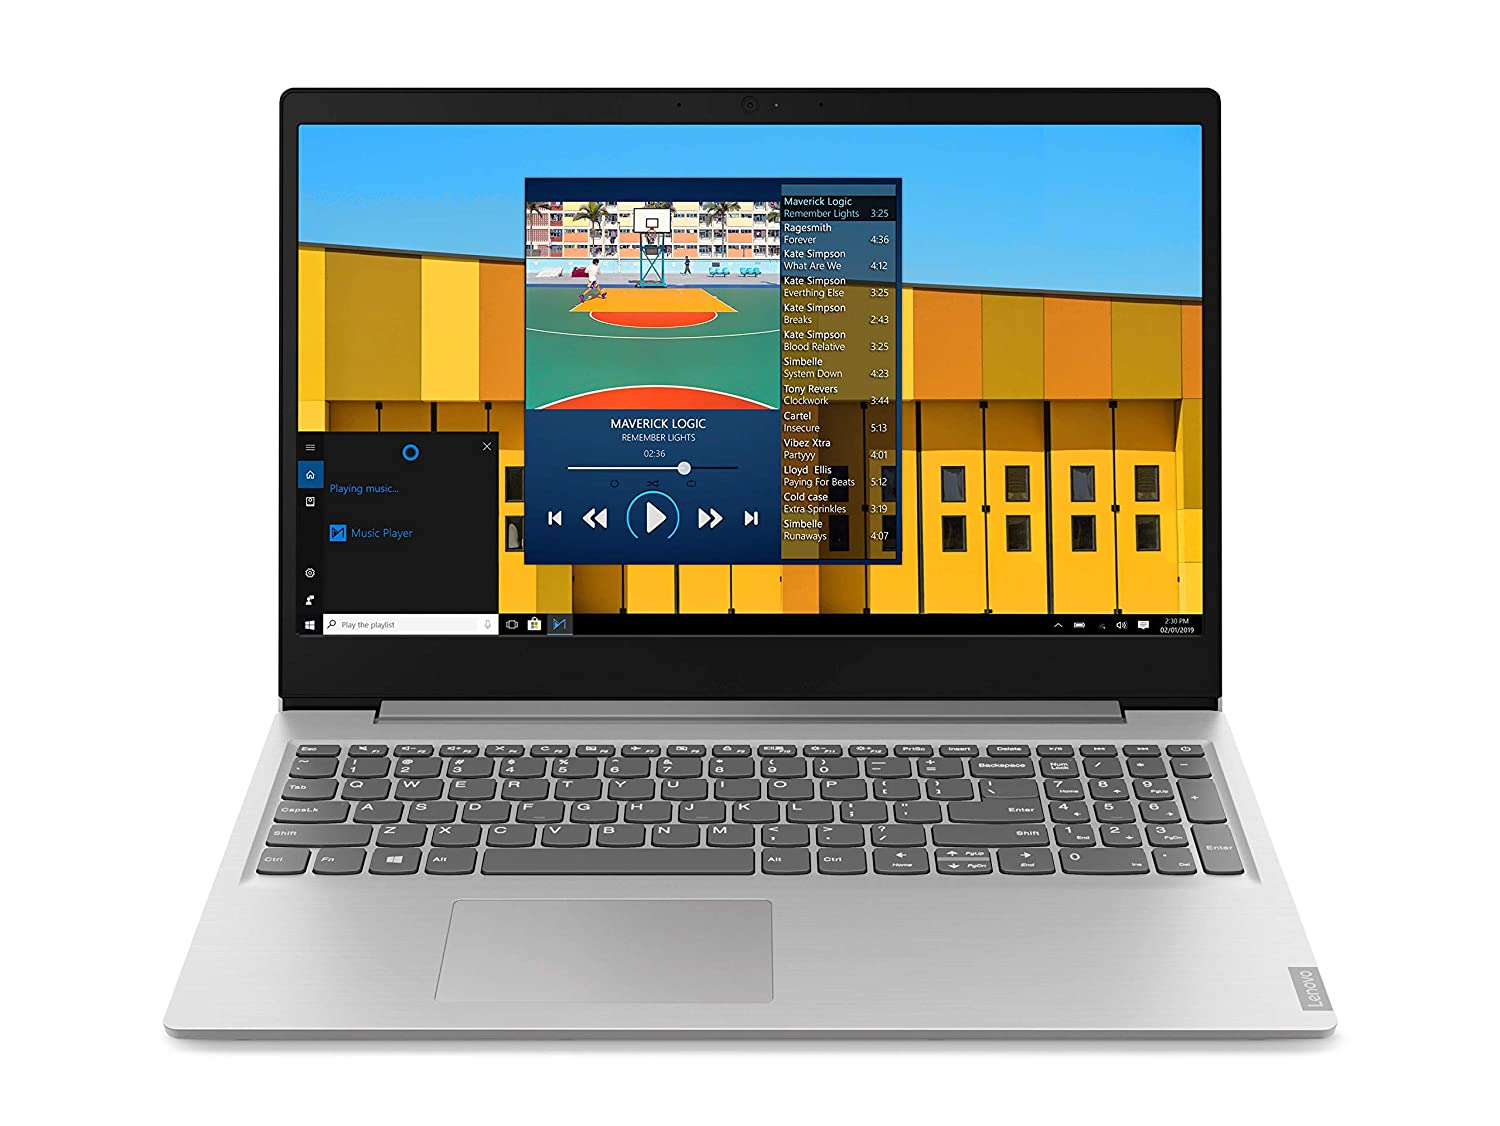 Lenovo Ideapad S145 AMD A6-9225 15.6-inch HD Thin and Light Laptop ( 4GB RAM / 1TB HDD / Windows 10 Home / Office Home and Student 2019 / Grey / 1.85kg ), 81N3004DIN